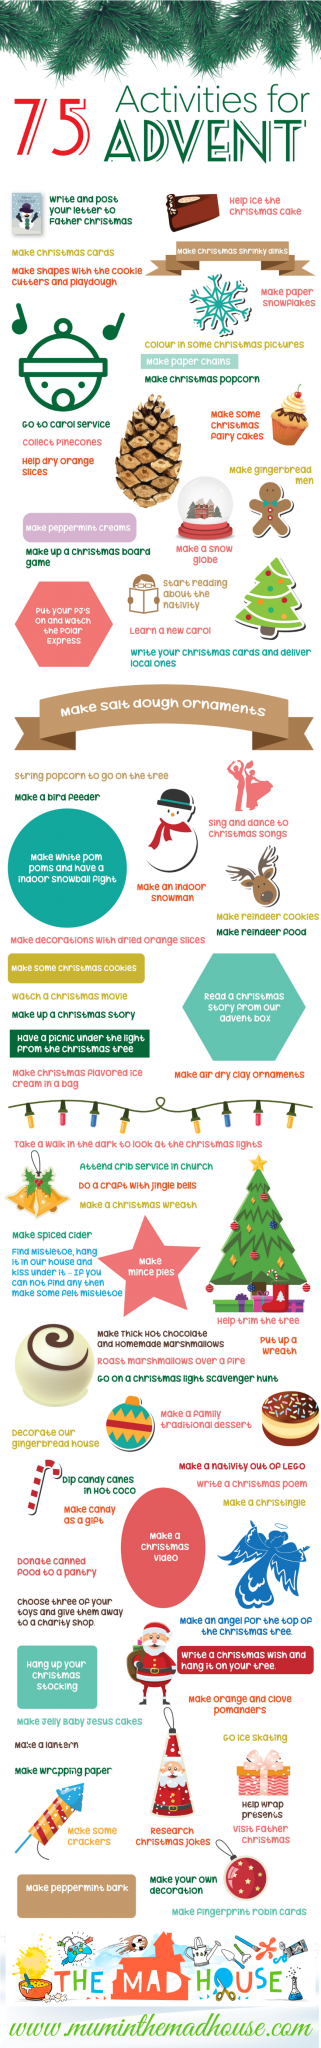 Ultimate advent activity list. Focus on the build up to Christmas with our 75 family activities for advent. There are many low cost or no cost activities for kids of all ages here.